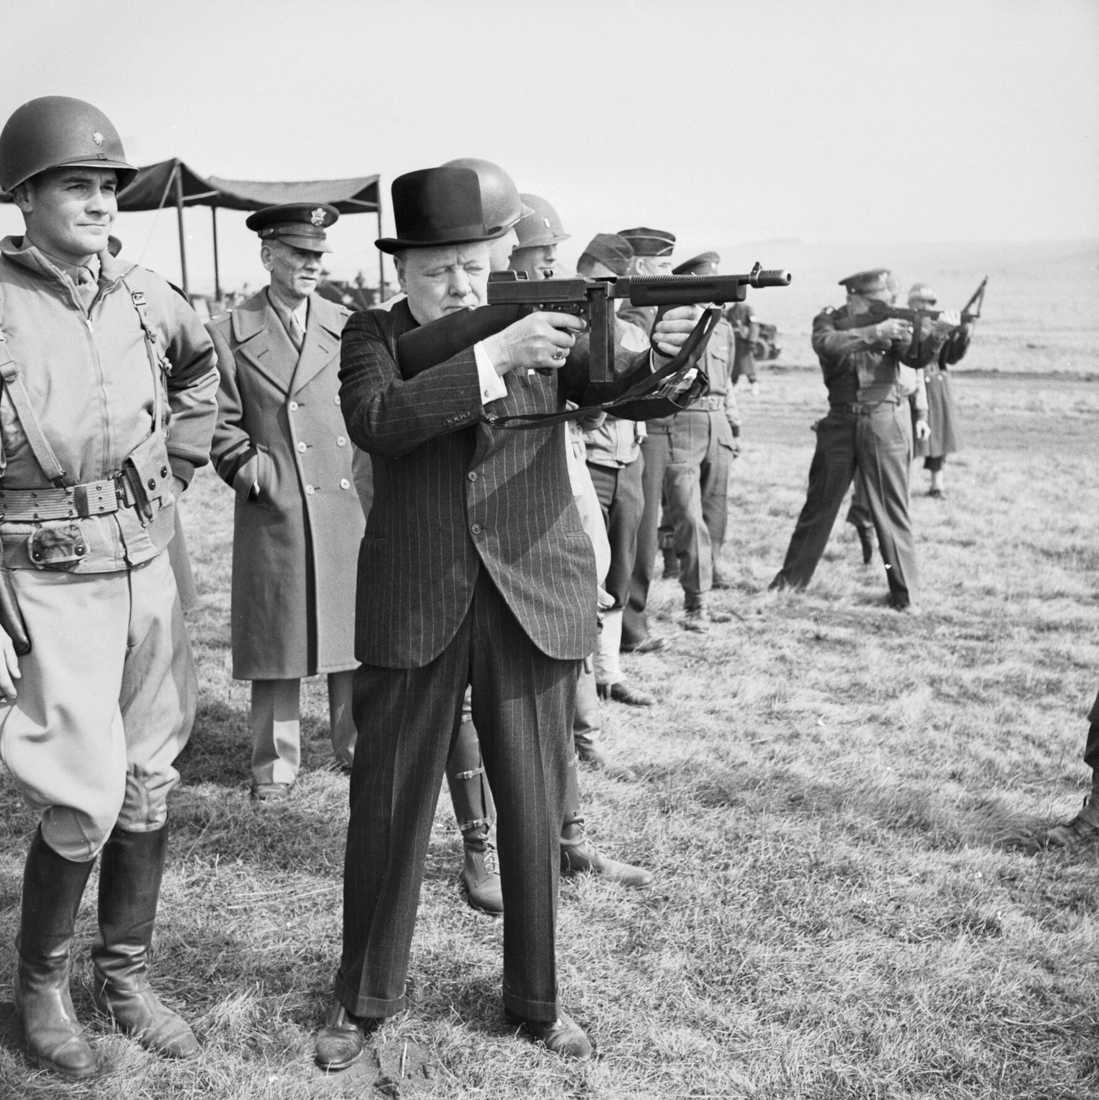 Winston_Churchill_fires_a_Thompson_submachine_gun_alongside_the_Allied_Supreme_Commander-_General_Dwight_D_Eisenhower-_during_an_inspection_of_US_invasion_forces-_March_1944._H36960-1